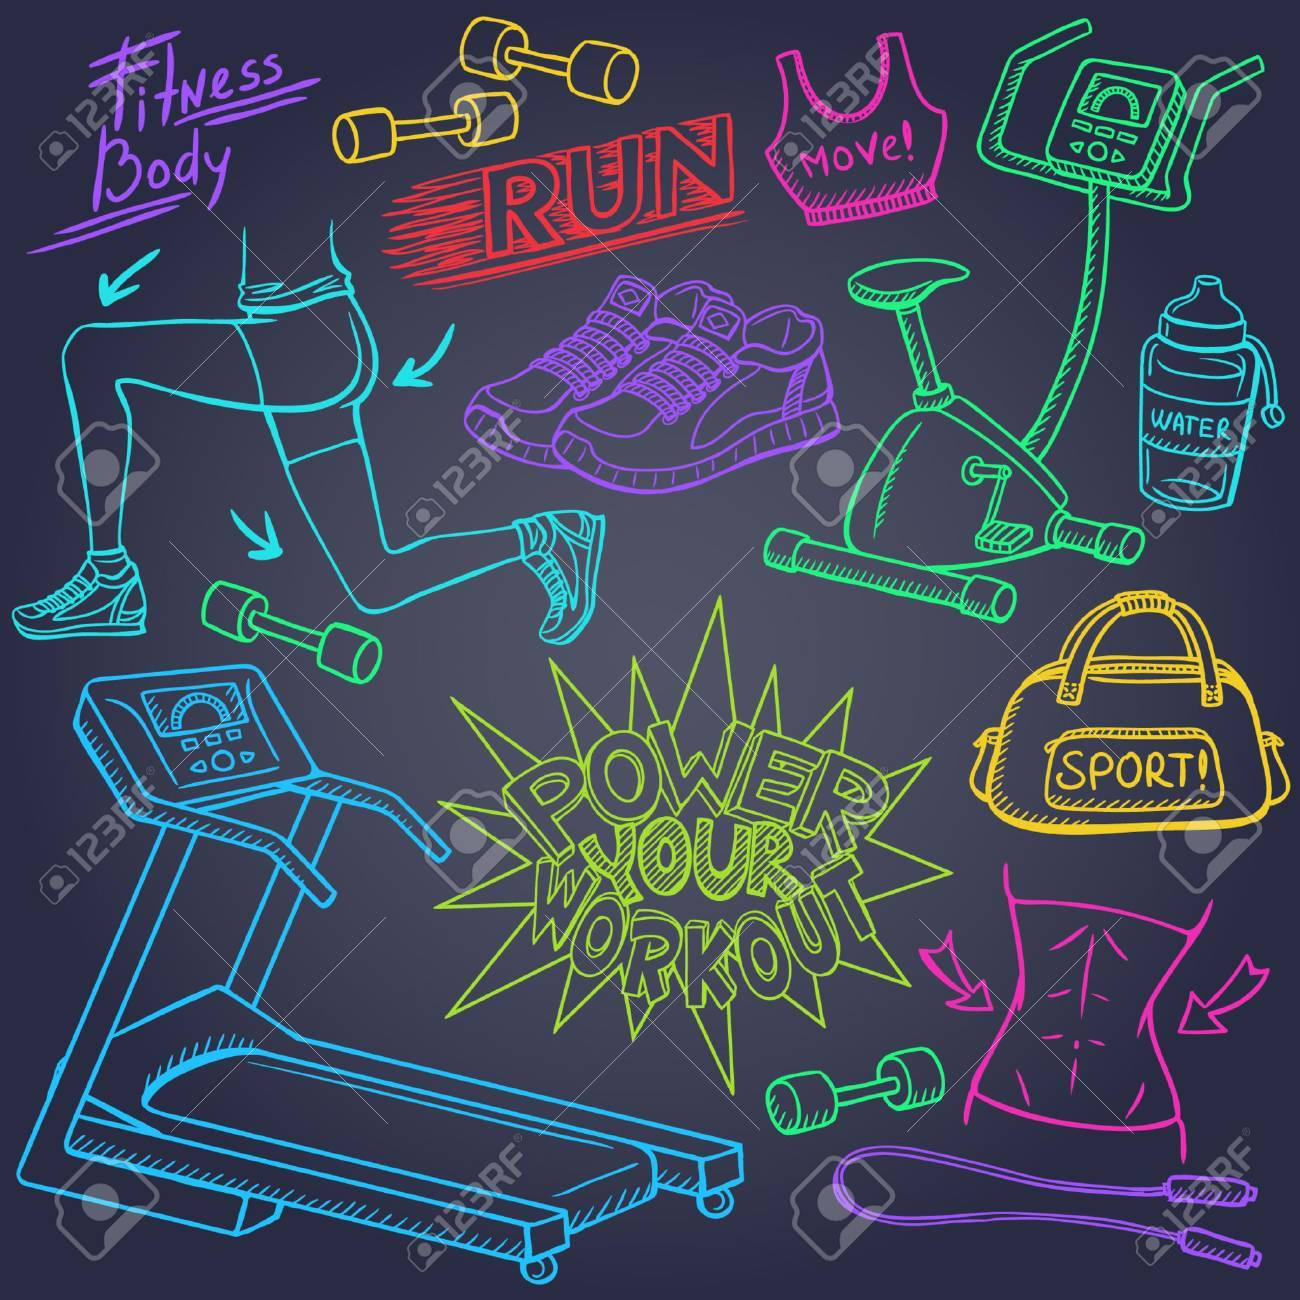 Gym and fitness doodles set - 37577421